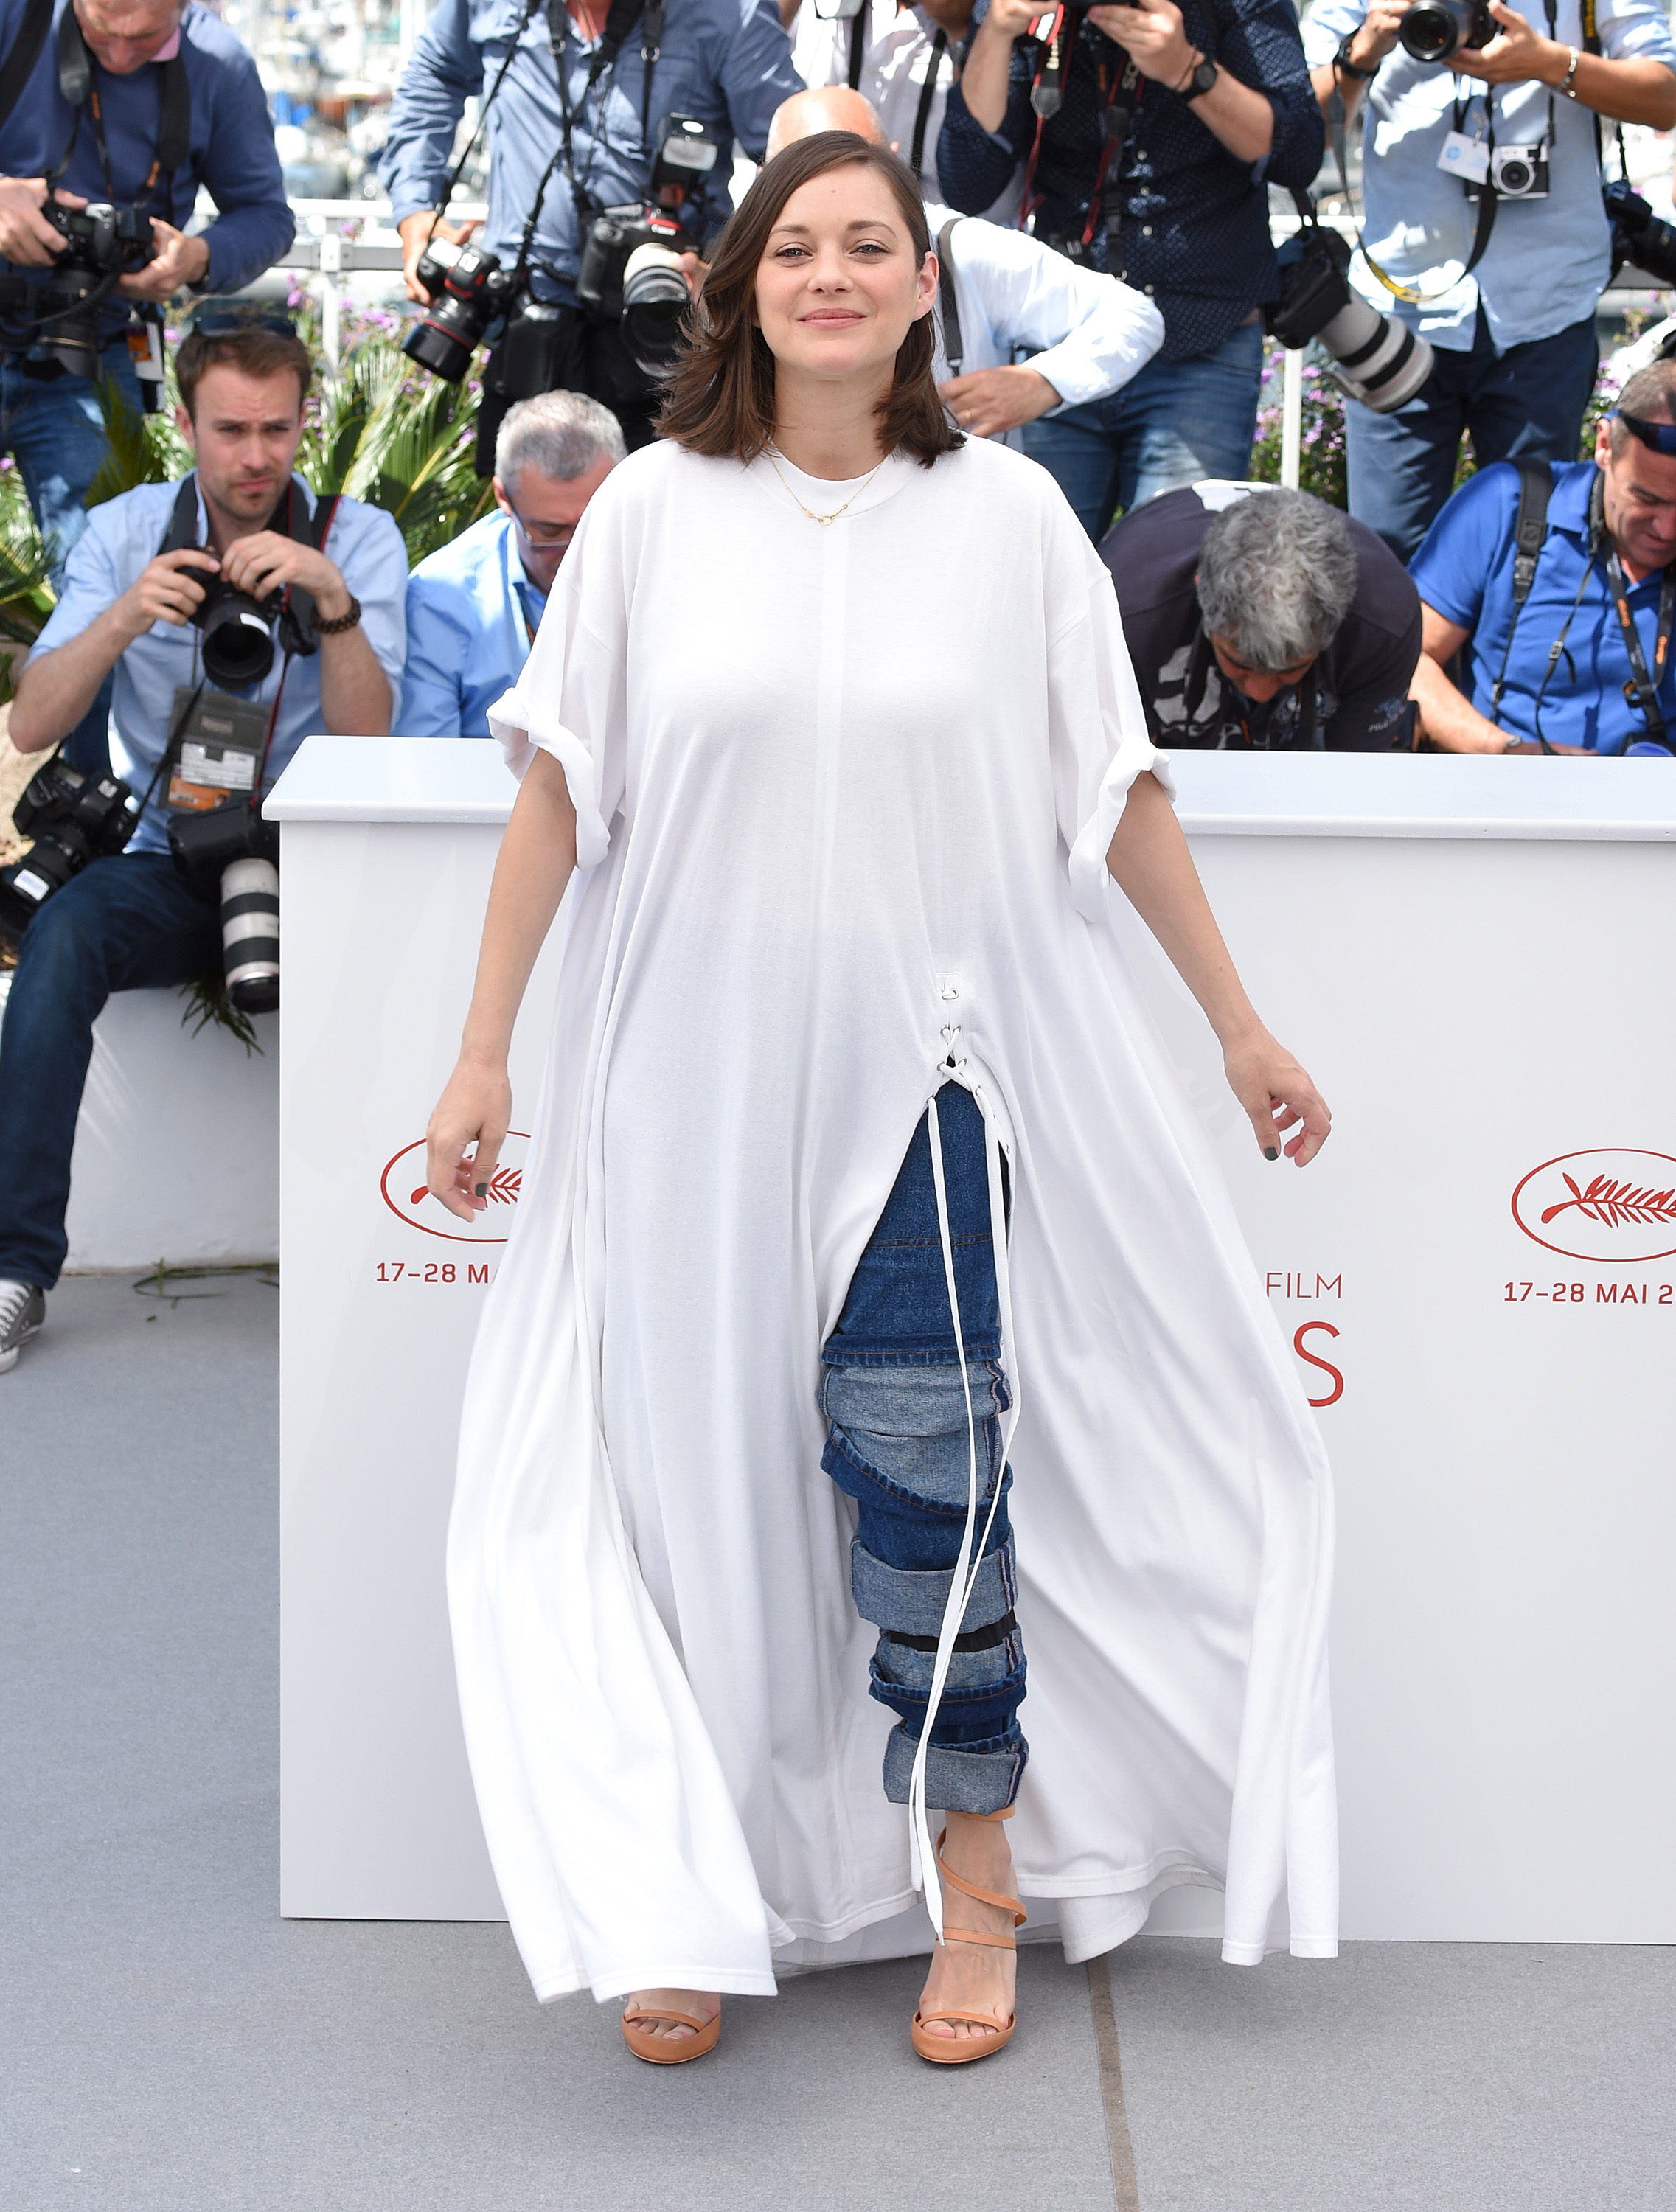 Marion Cotillard attends the  Ismael's Ghosts (Les Fantomes d'Ismael)  photocall during the 70th annual Cannes Film Festival at Palais des Festivals on May 17, 2017 in Cannes, France.  (Photo by Anthony Harvey/FilmMagic)